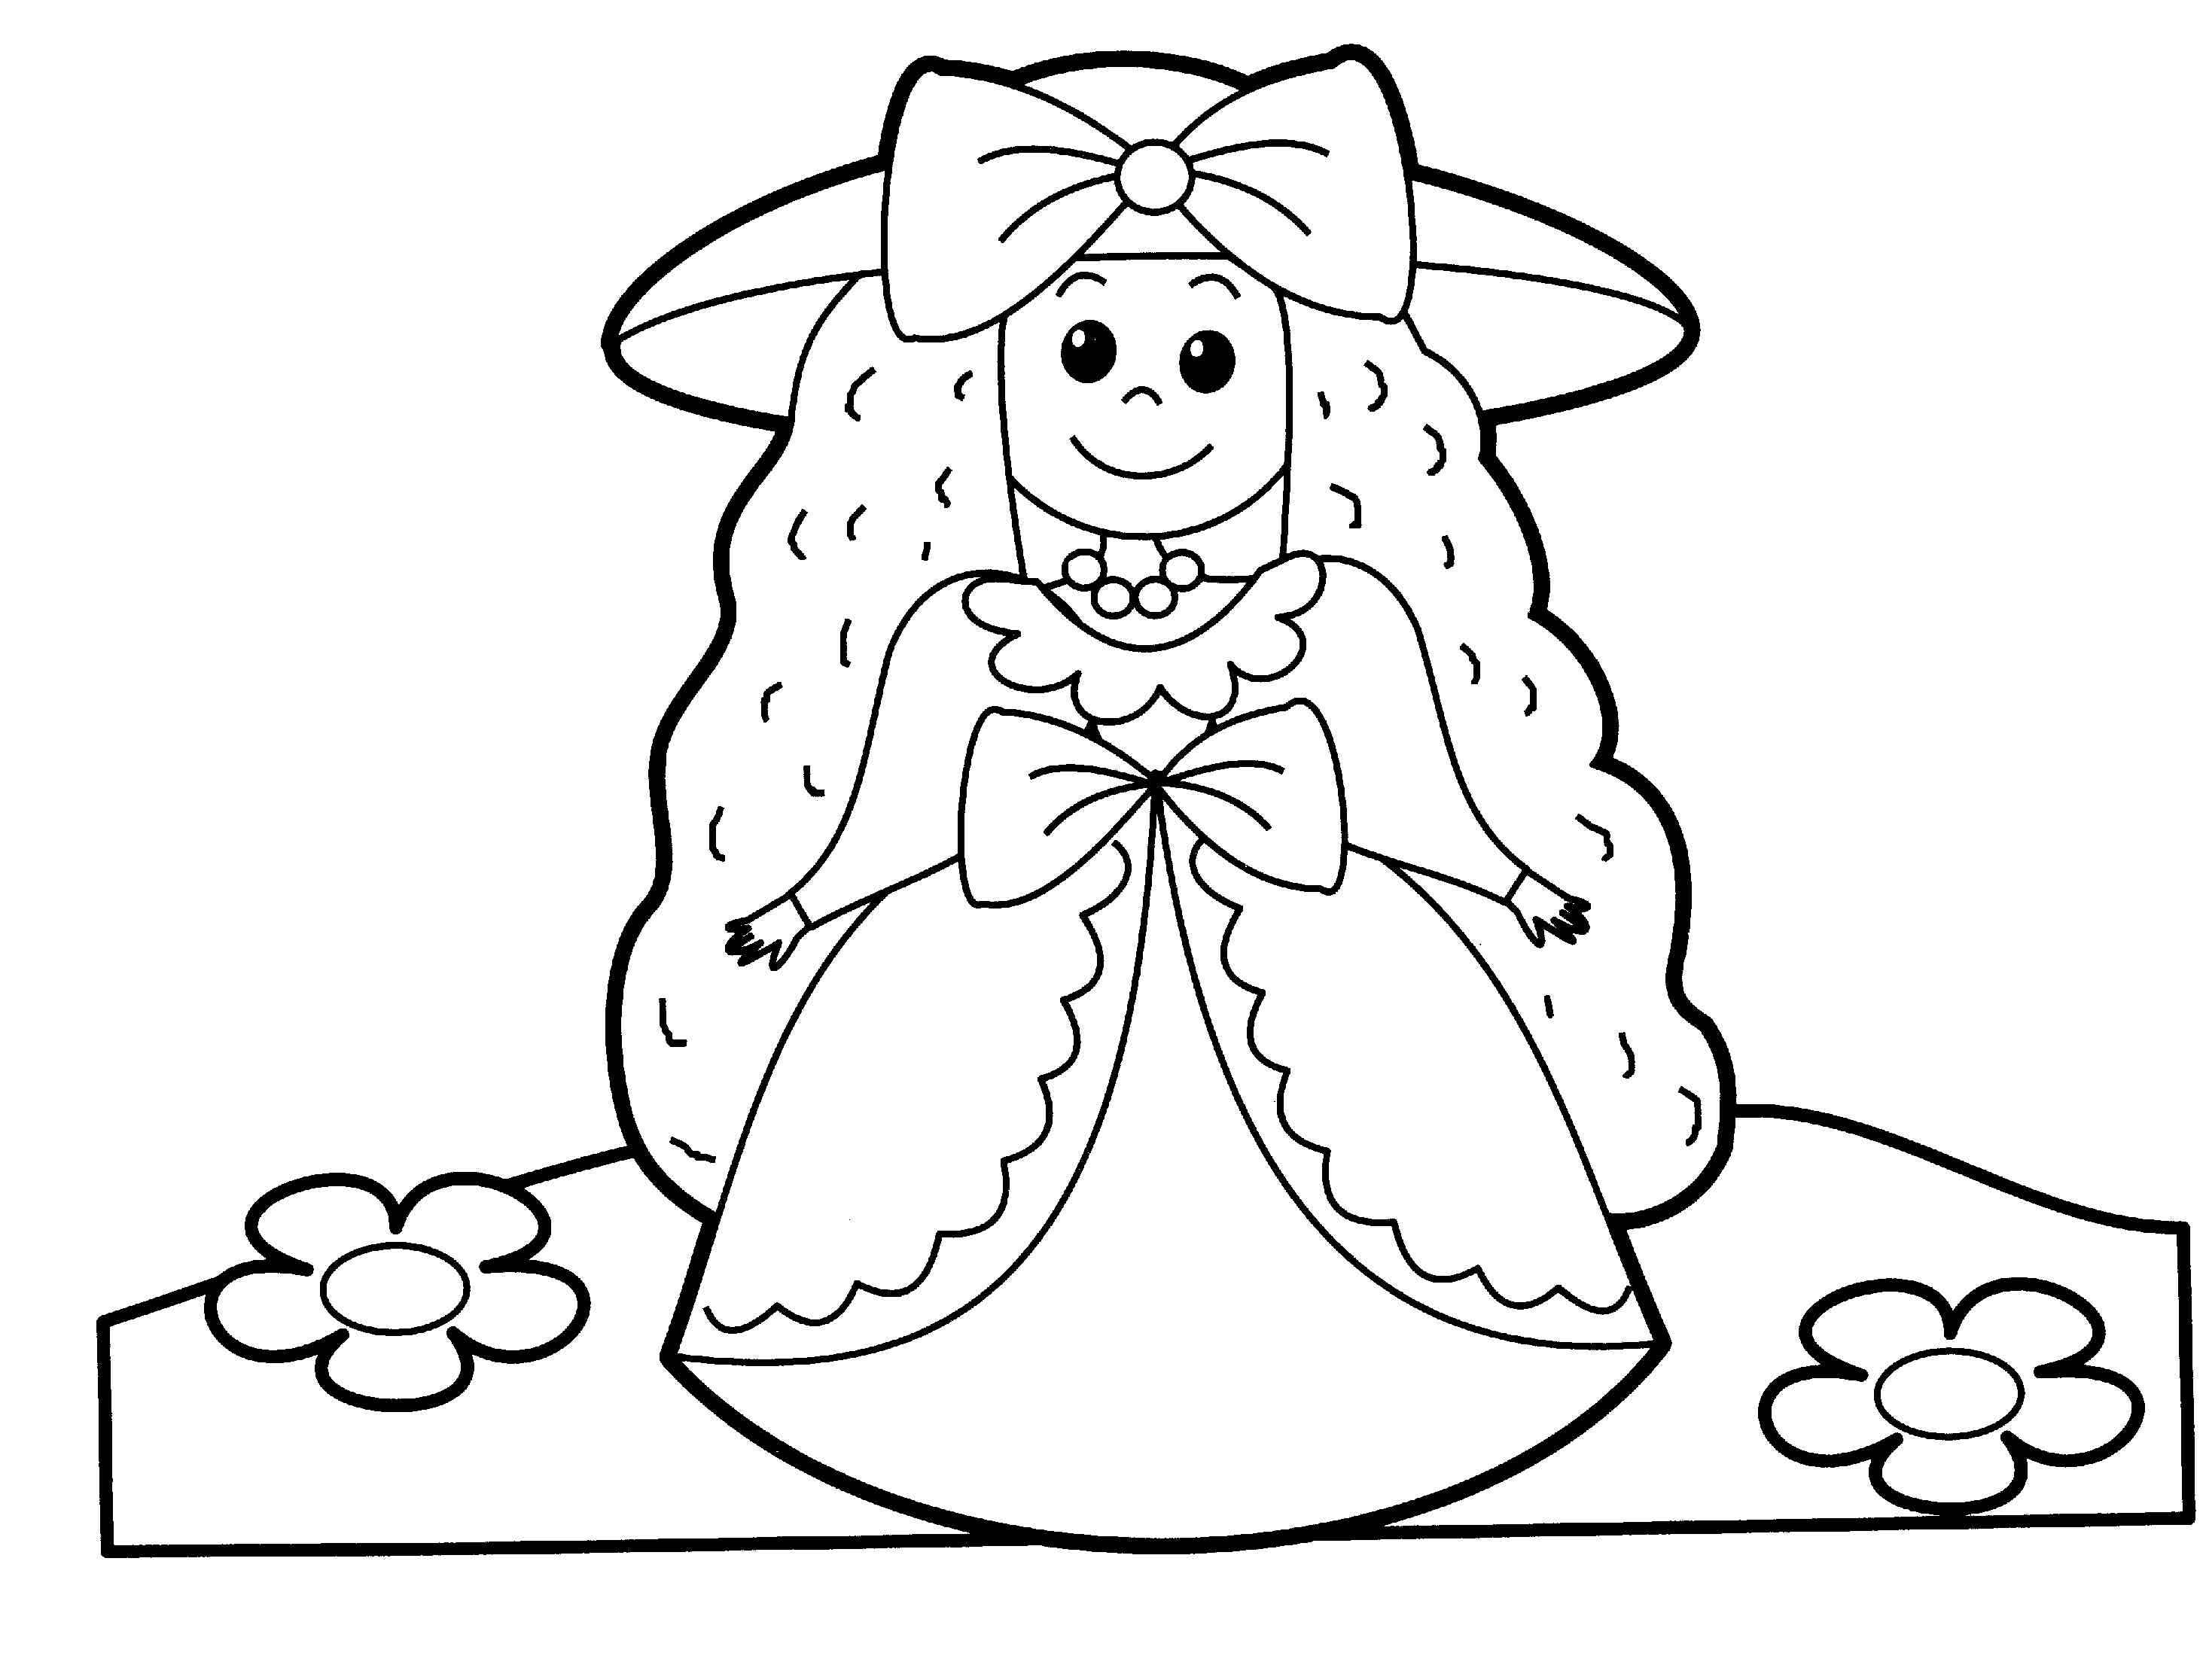 for Little people coloring pages